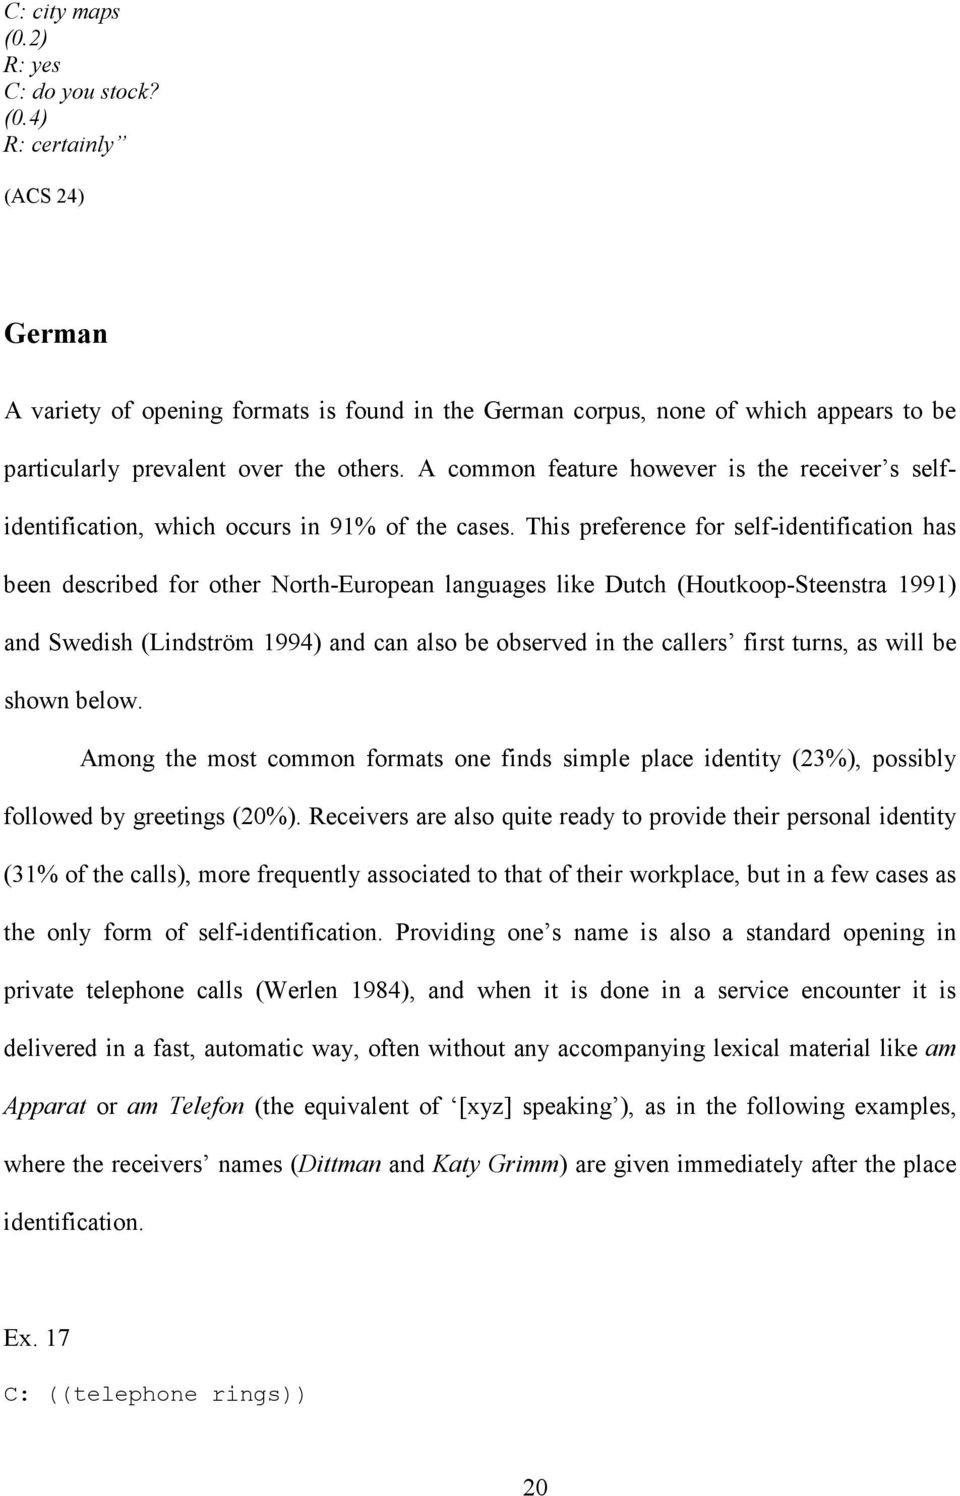 This preference for self-identification has been described for other North-European languages like Dutch (Houtkoop-Steenstra 1991) and Swedish (Lindström 1994) and can also be observed in the callers